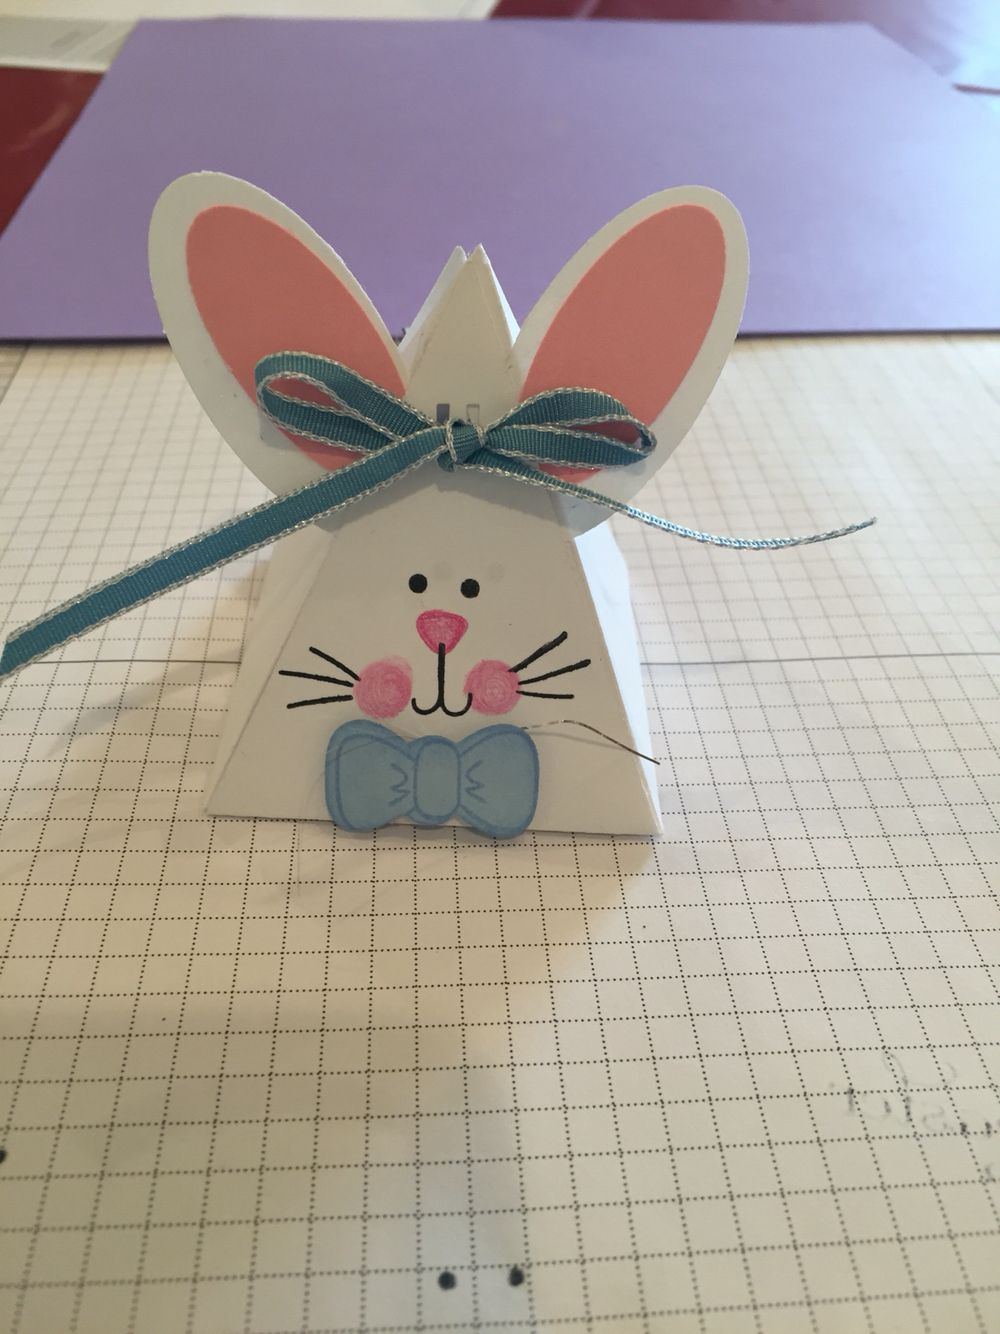 Here is my bunny version using oval punches and the pyramid pals thinlits dies and stamp set.